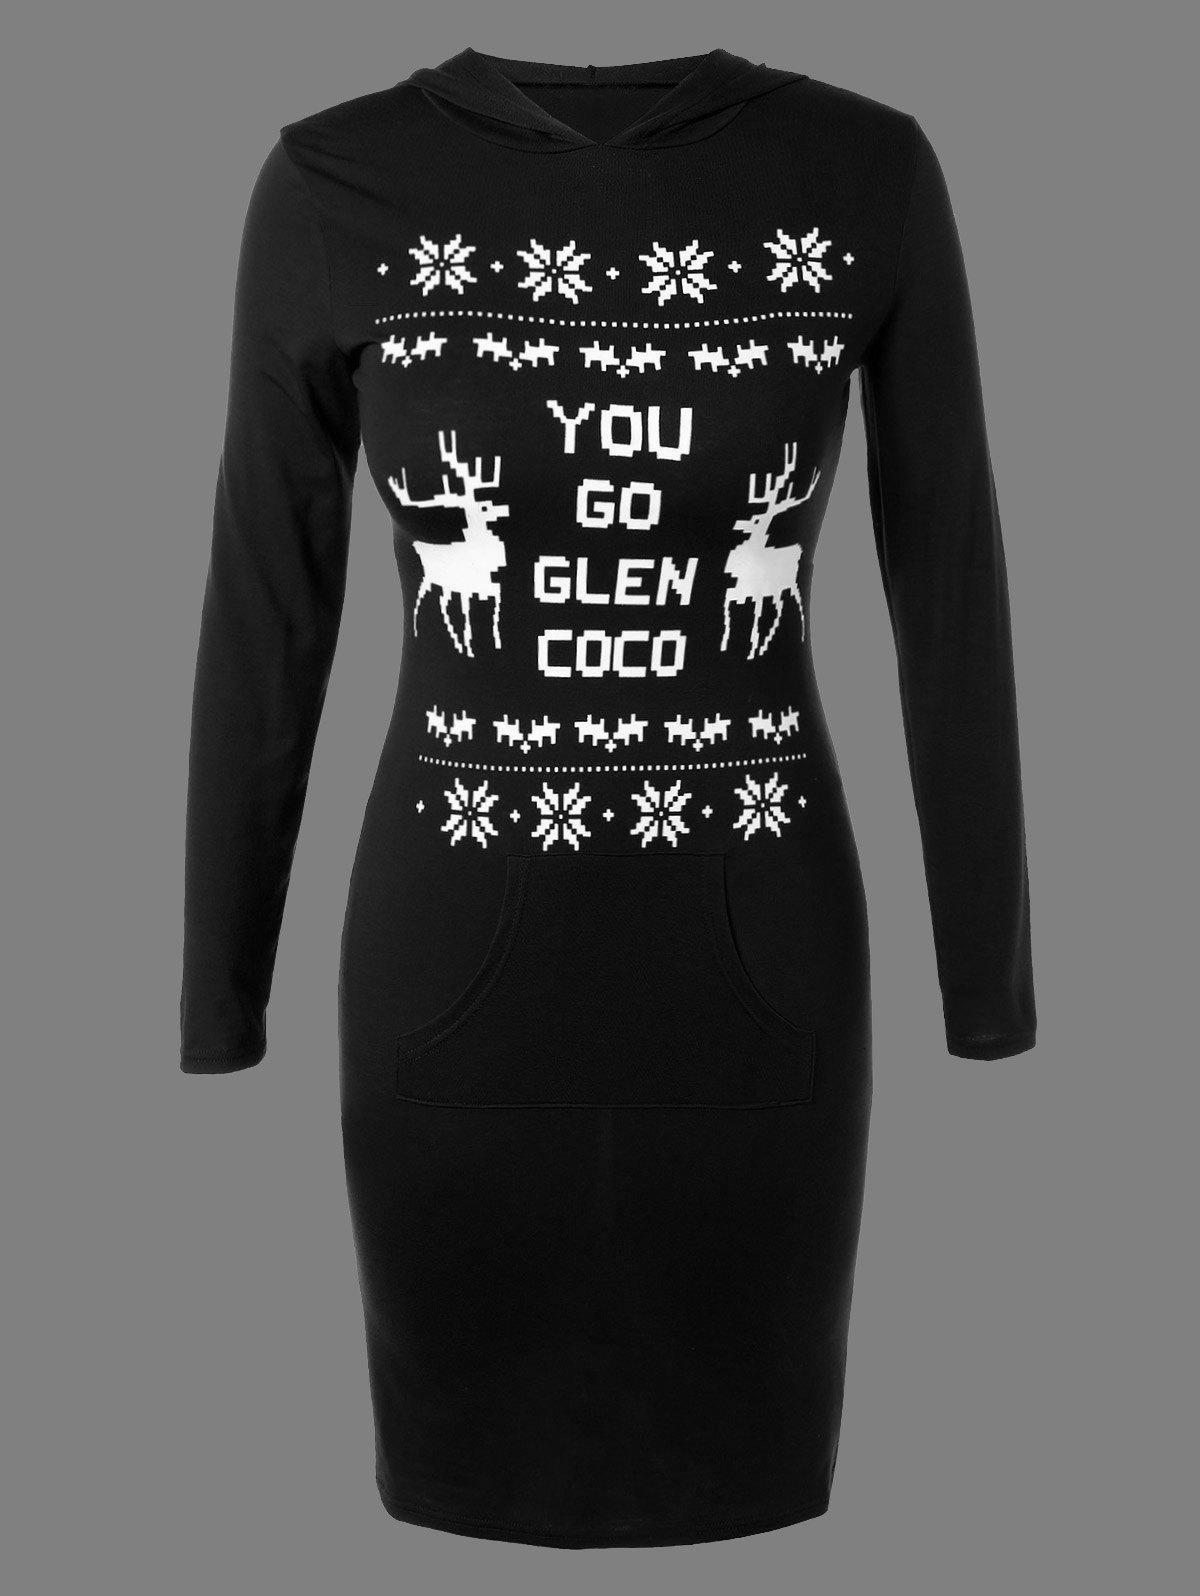 New Christmas Snowflake Deer Print Hoodie Dress